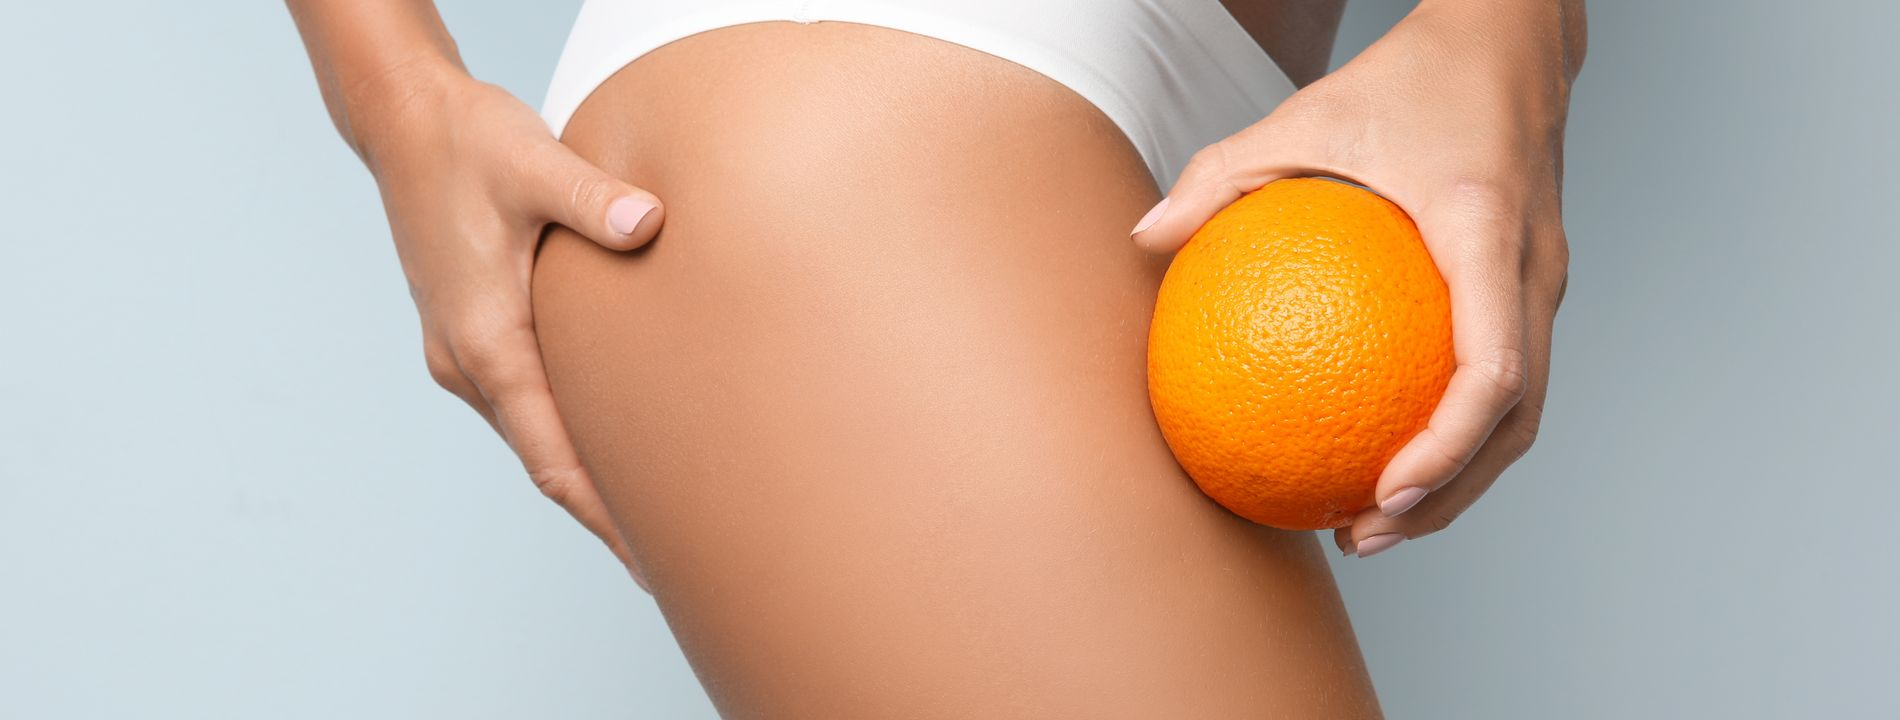 Massage anti cellulite à Reims